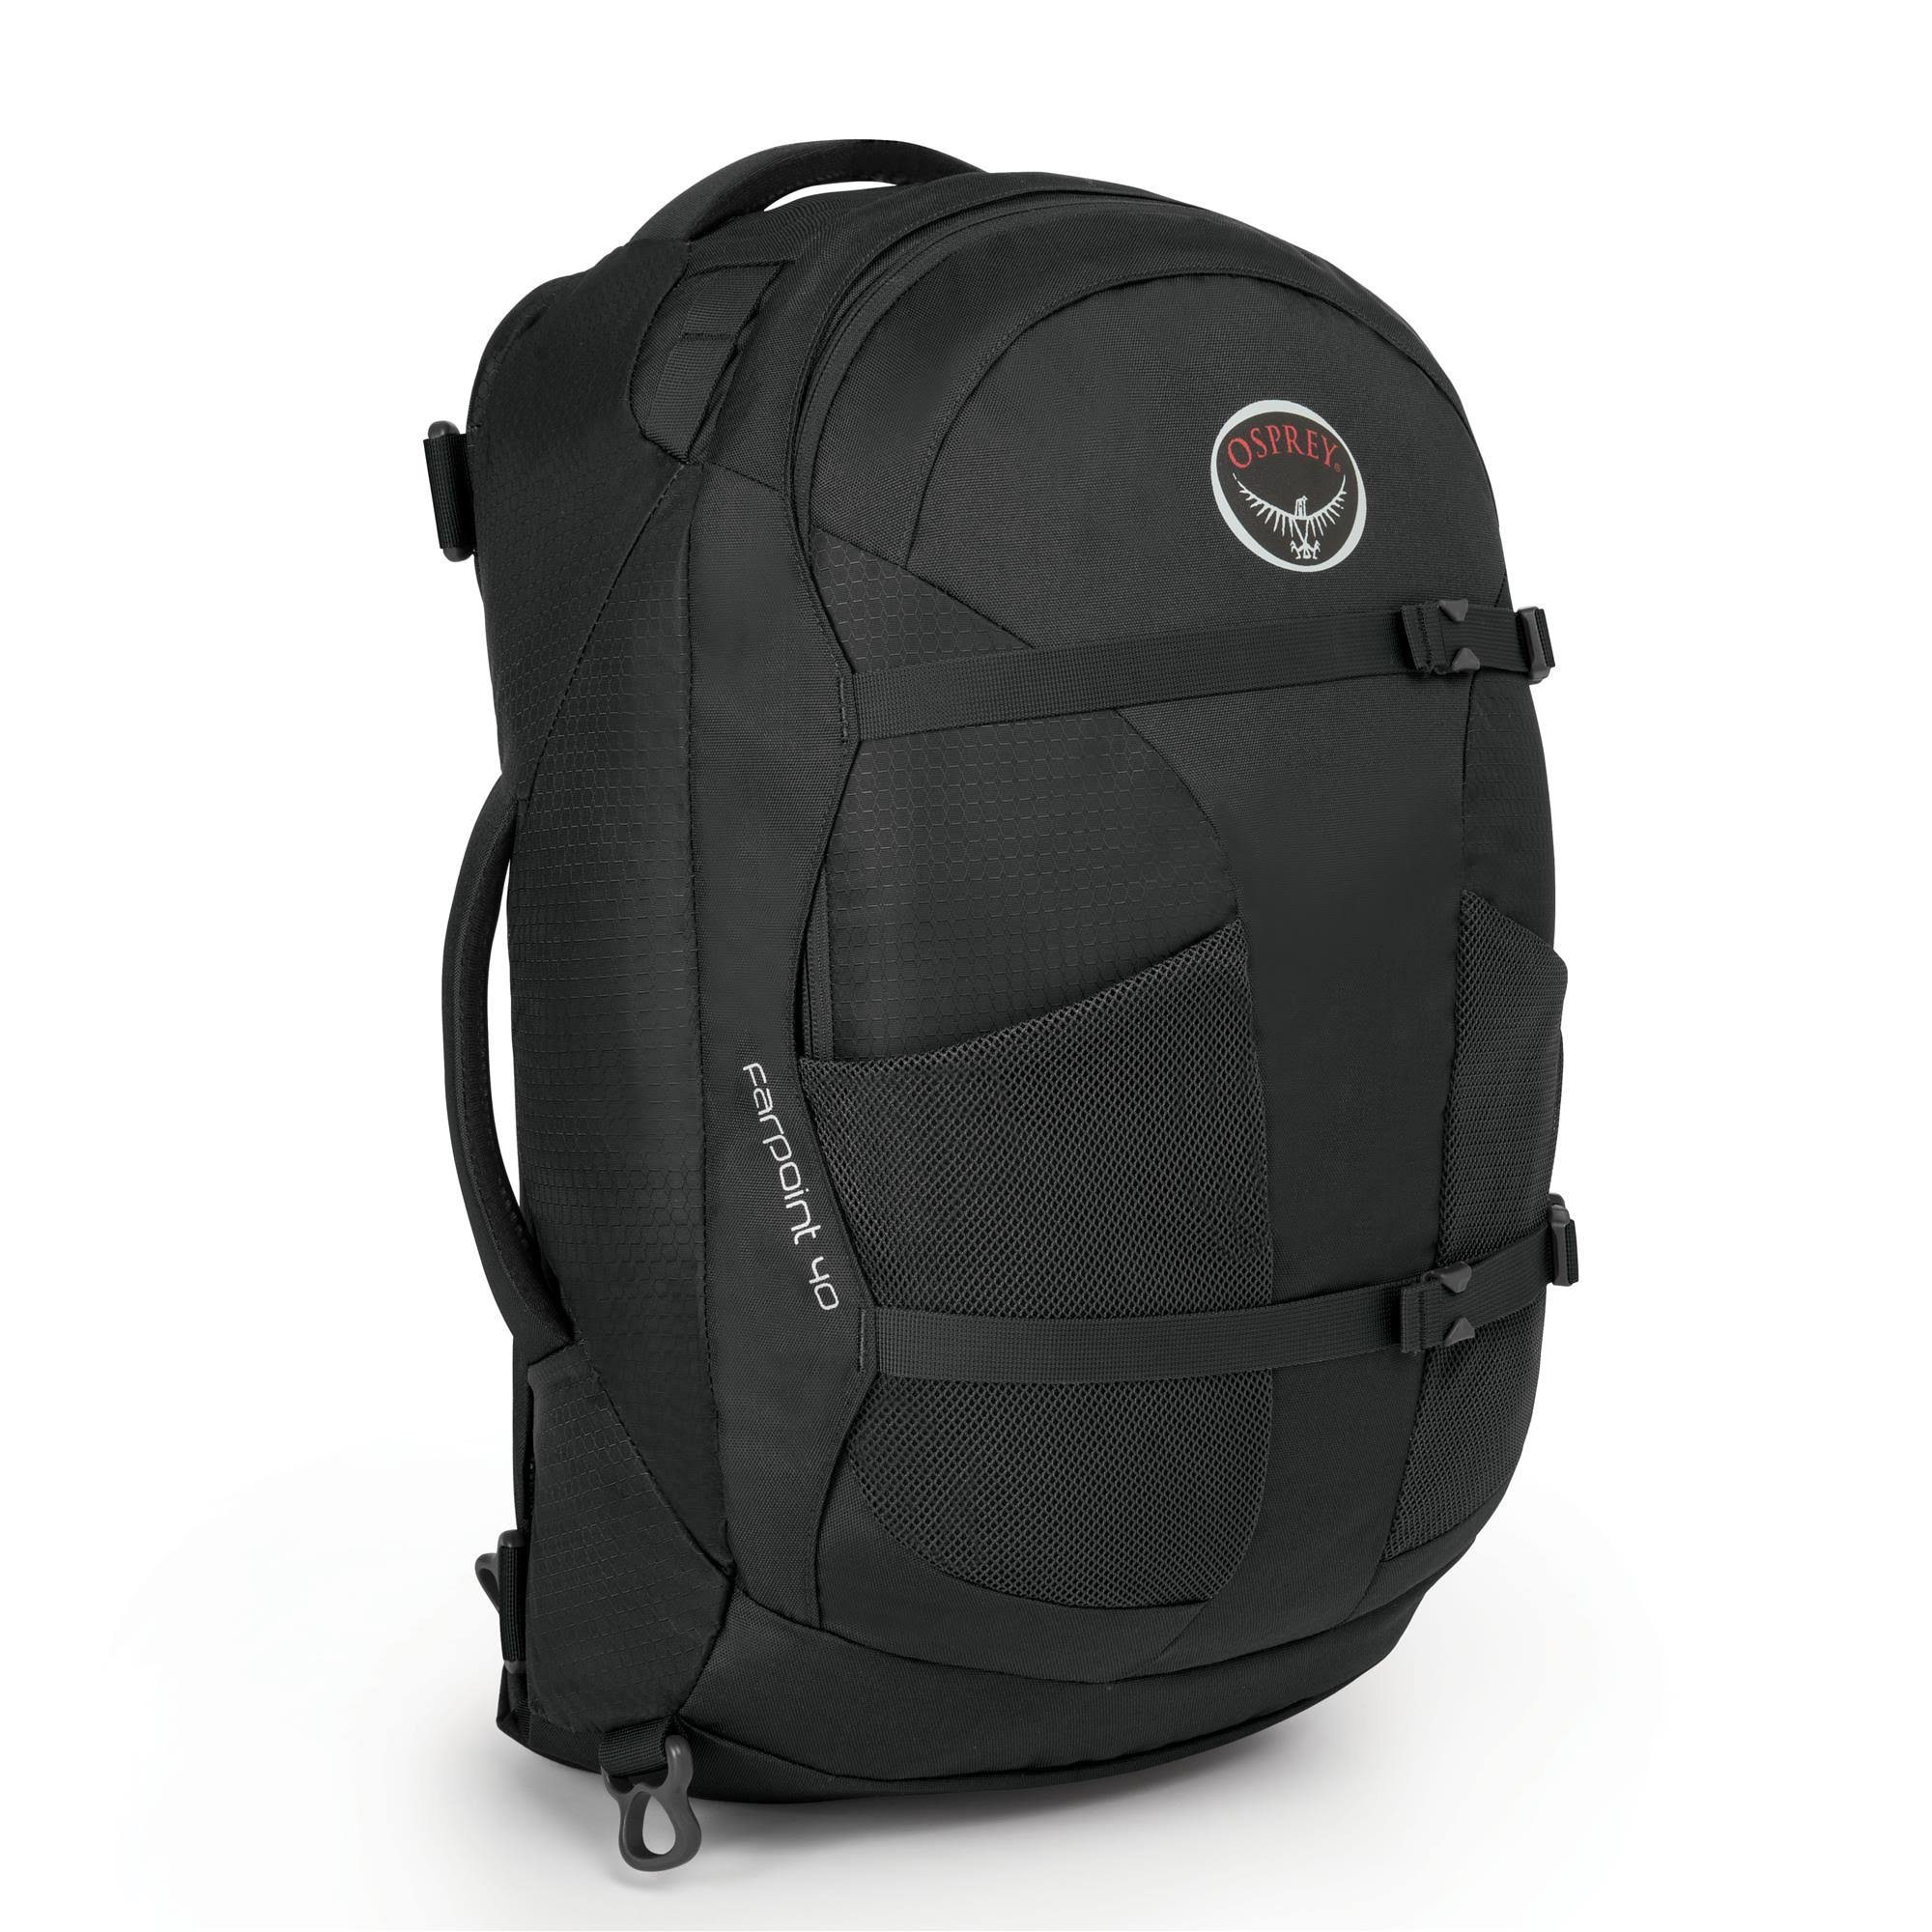 Osprey Farpoint Backpack - Black, 40l to 60l